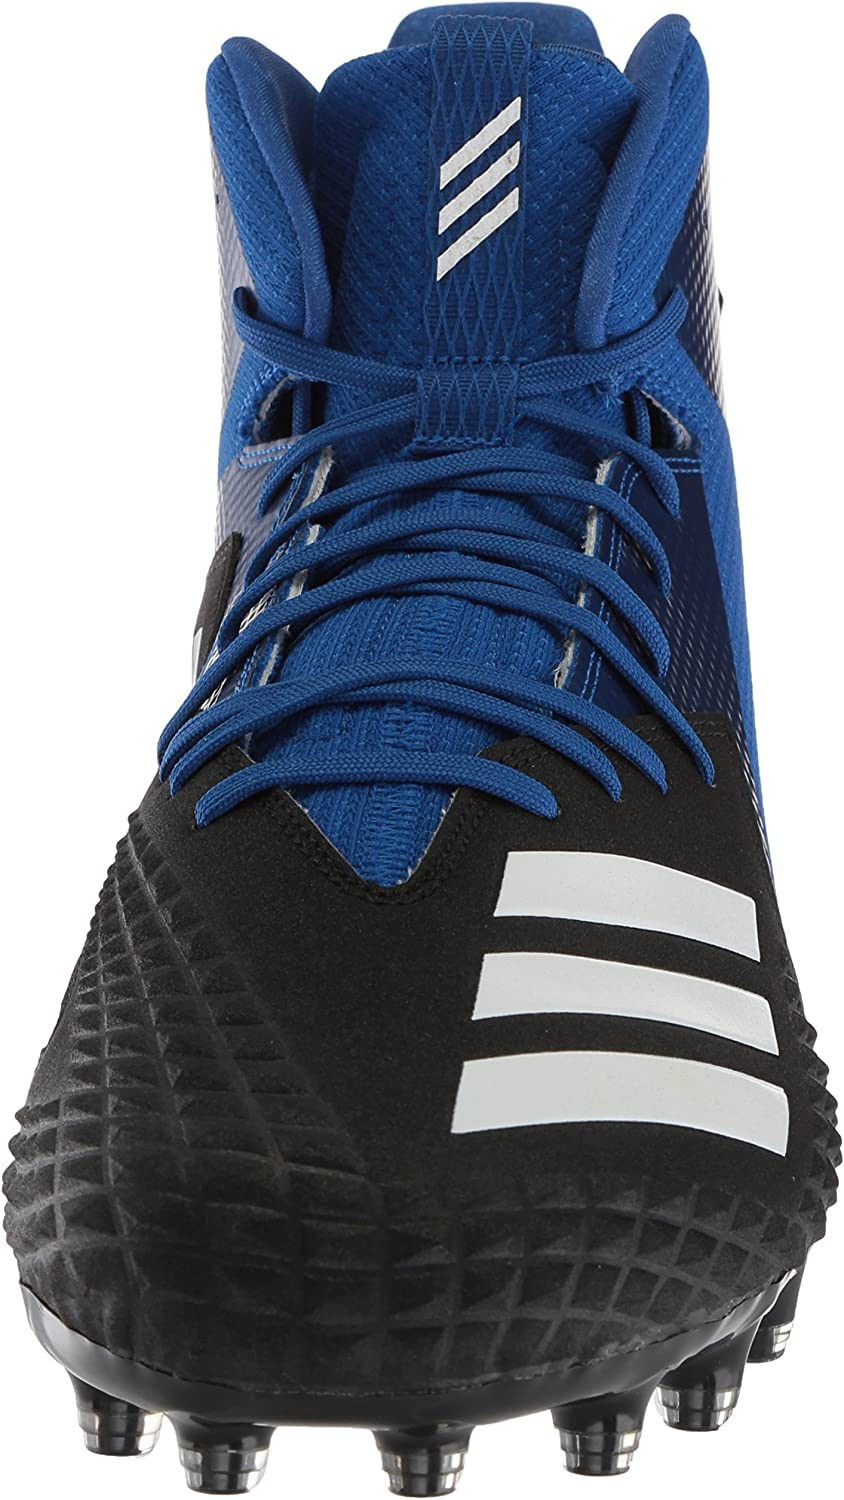 adidas Freak X Carbon Mid Chaussures Athlétiques Black White Collegiate Royal